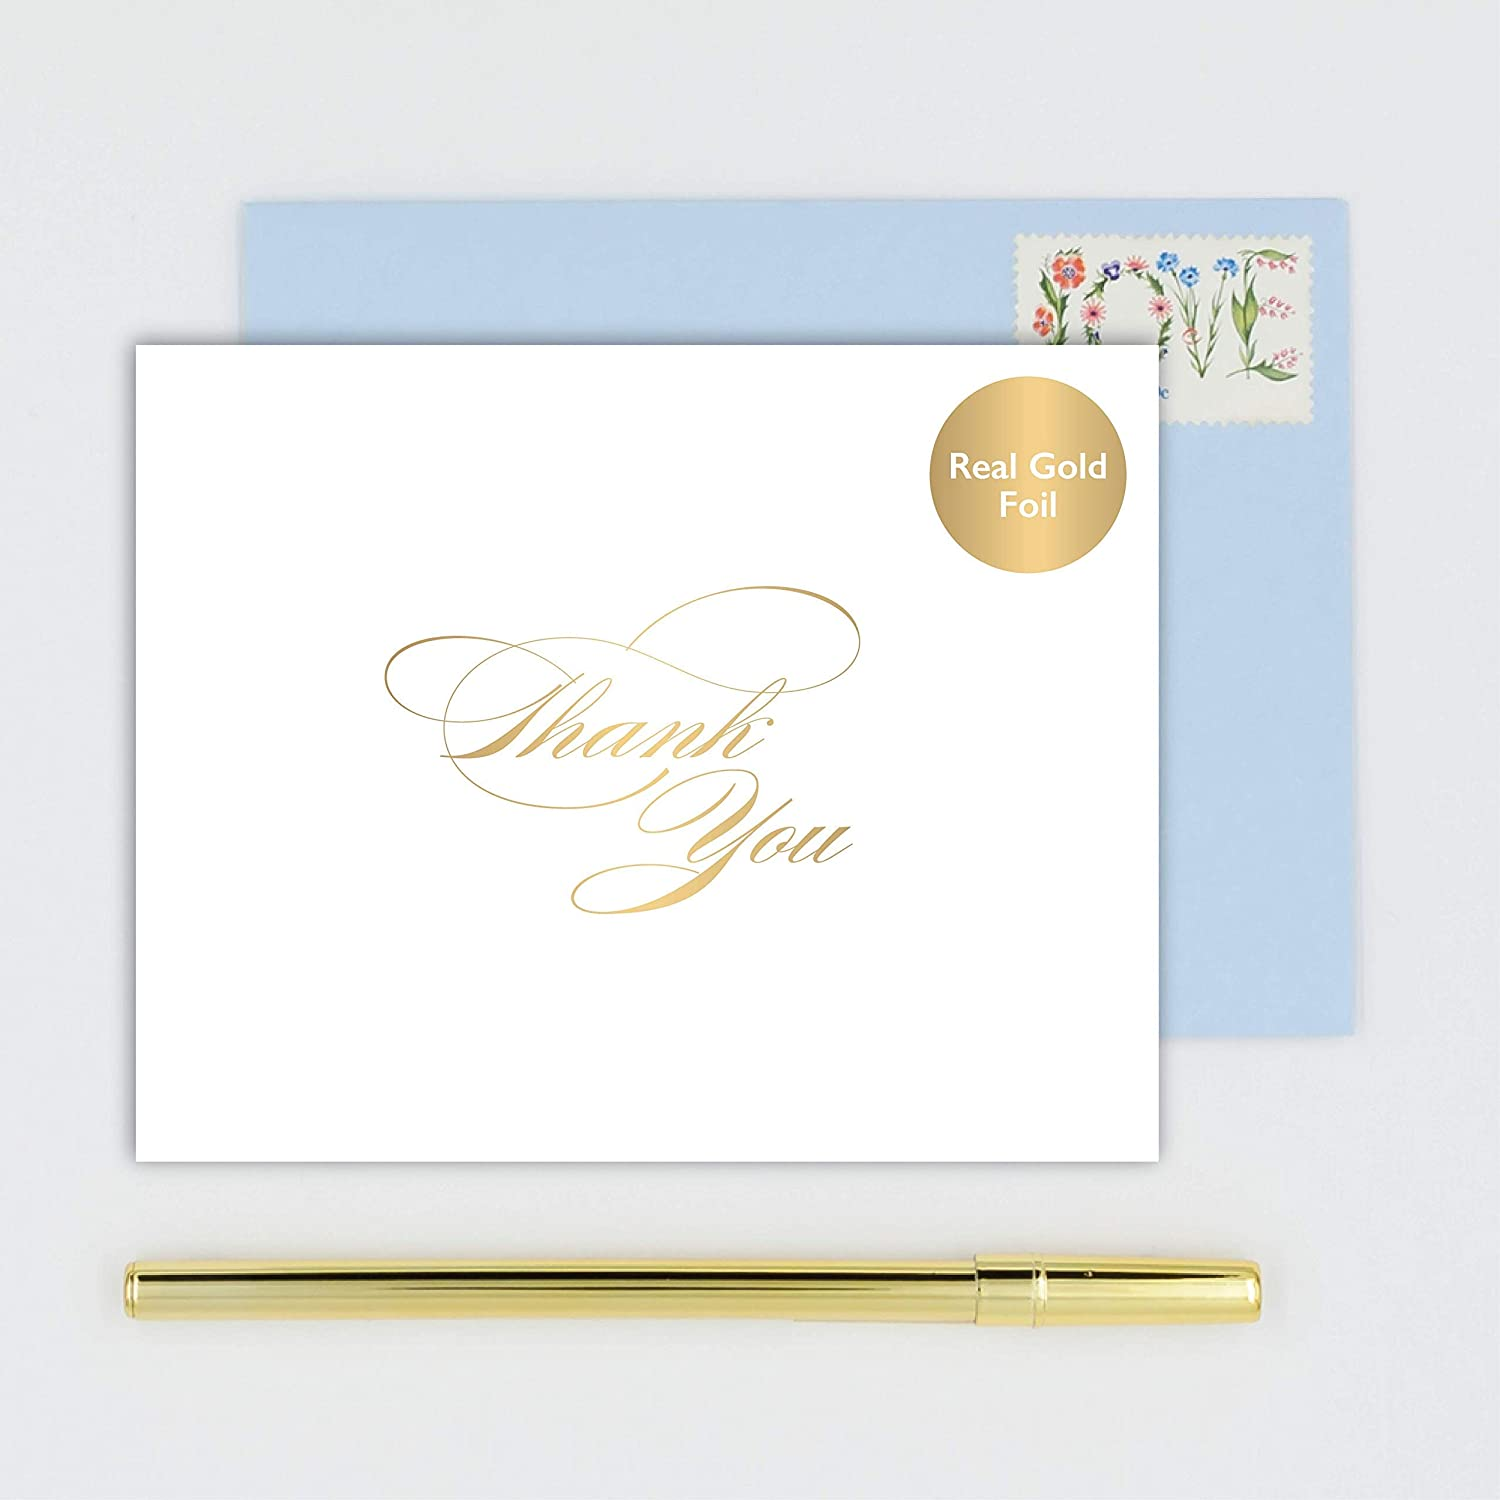 Thank You Cards Stationery - Boxed Set of 10 White Folded Notecards with Choice of Envelope Color - Handmade Gold Foil Stamped Note Cards